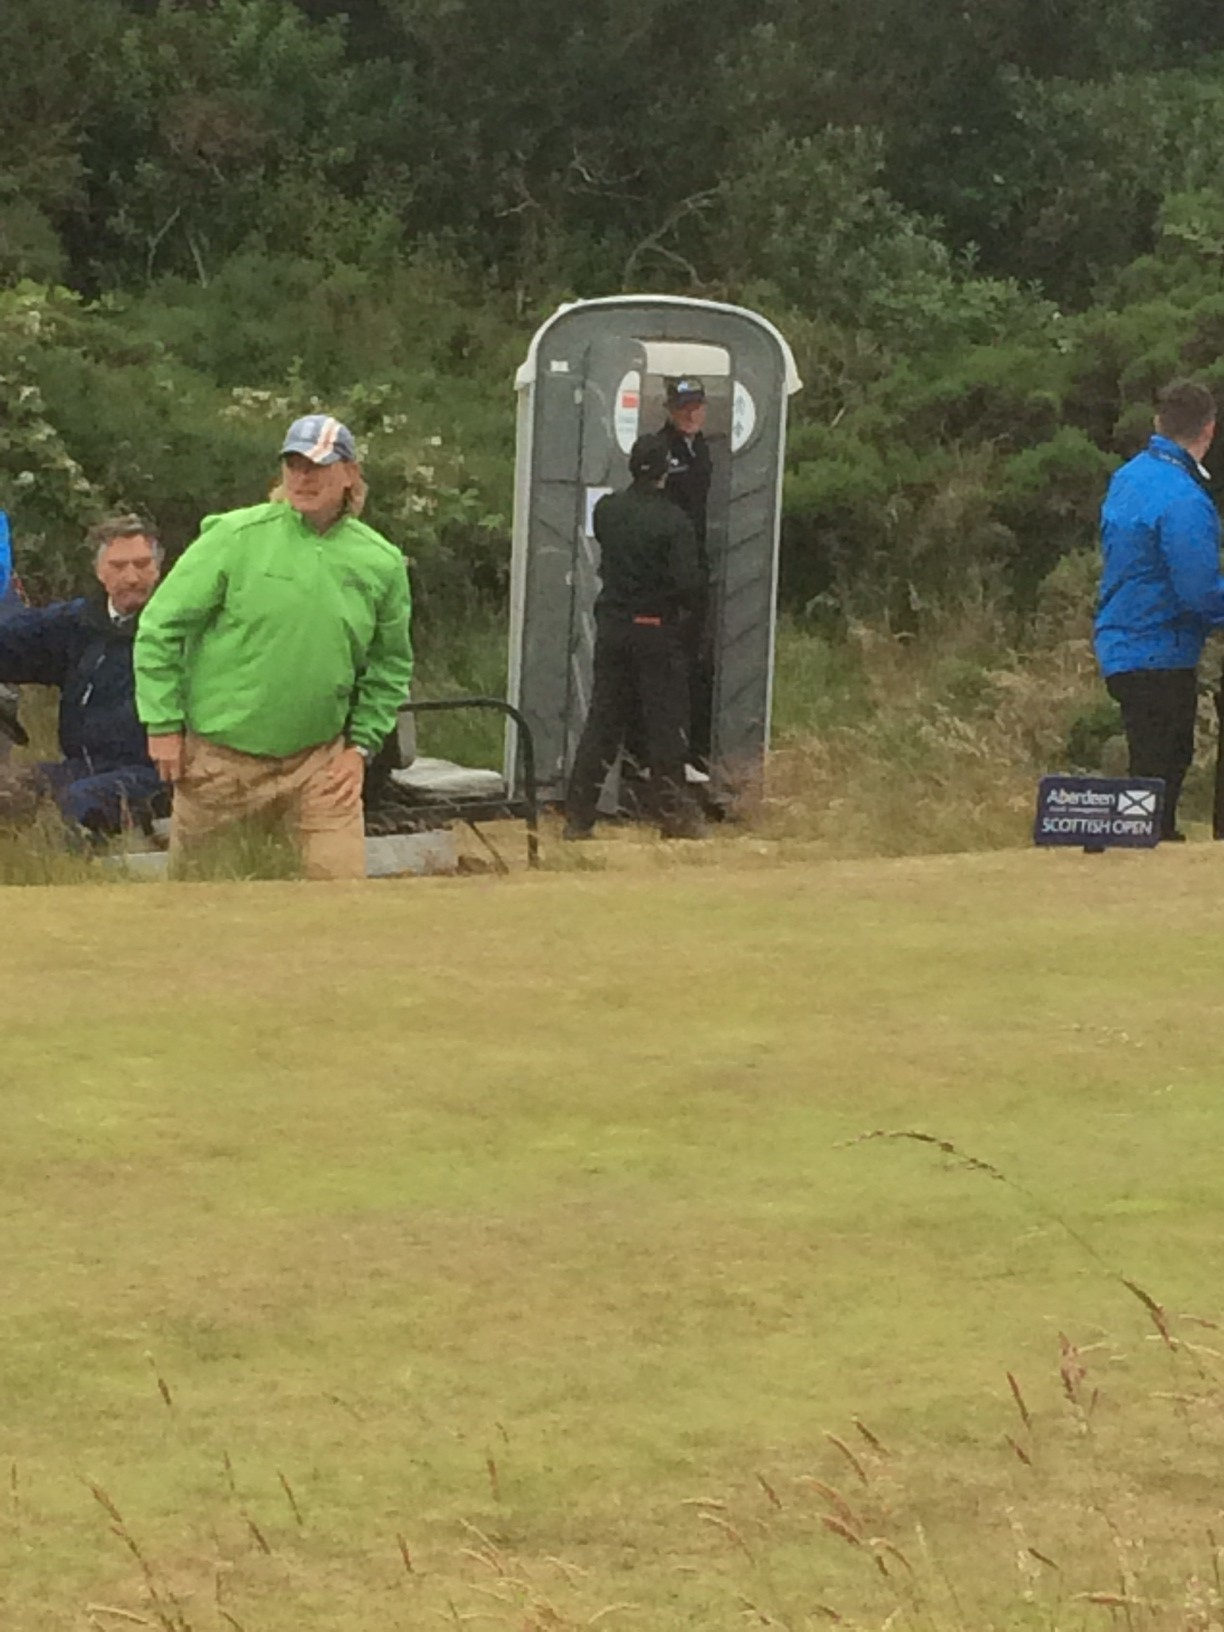 Rory McIlroy finally lets Robert Karlsson out of the toilet